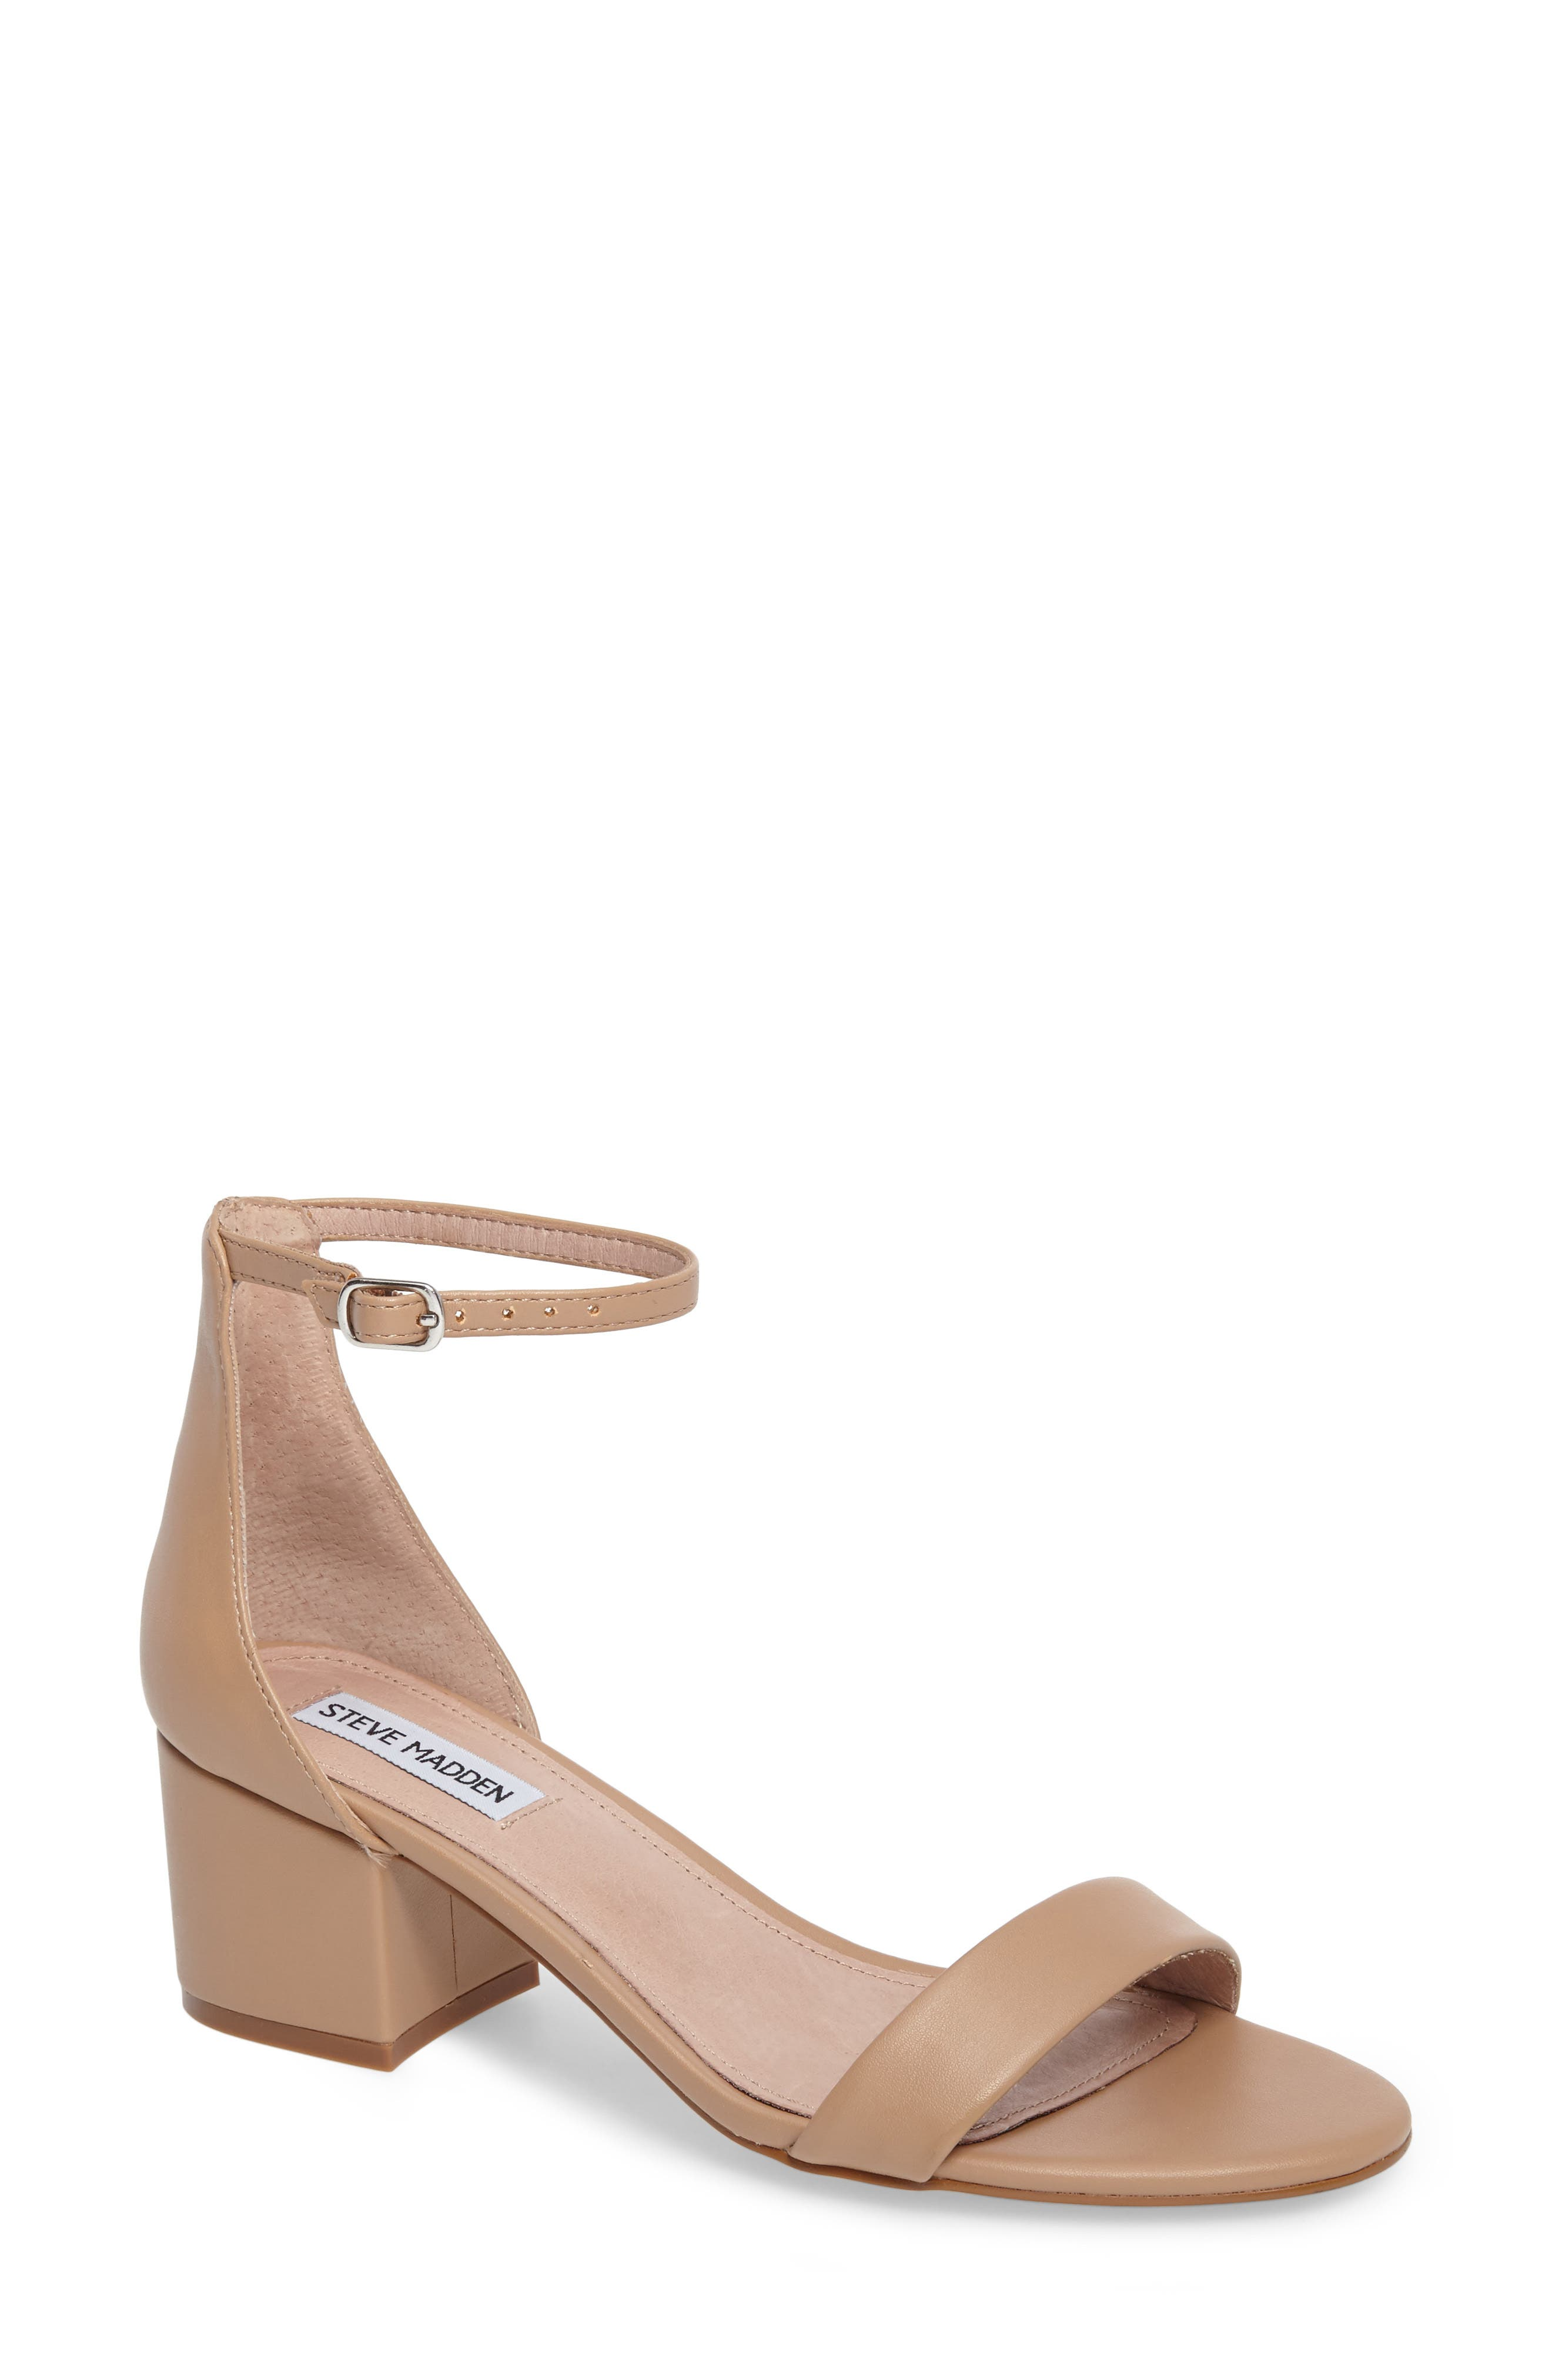 ,                             Irenee Ankle Strap Sandal,                             Main thumbnail 42, color,                             202